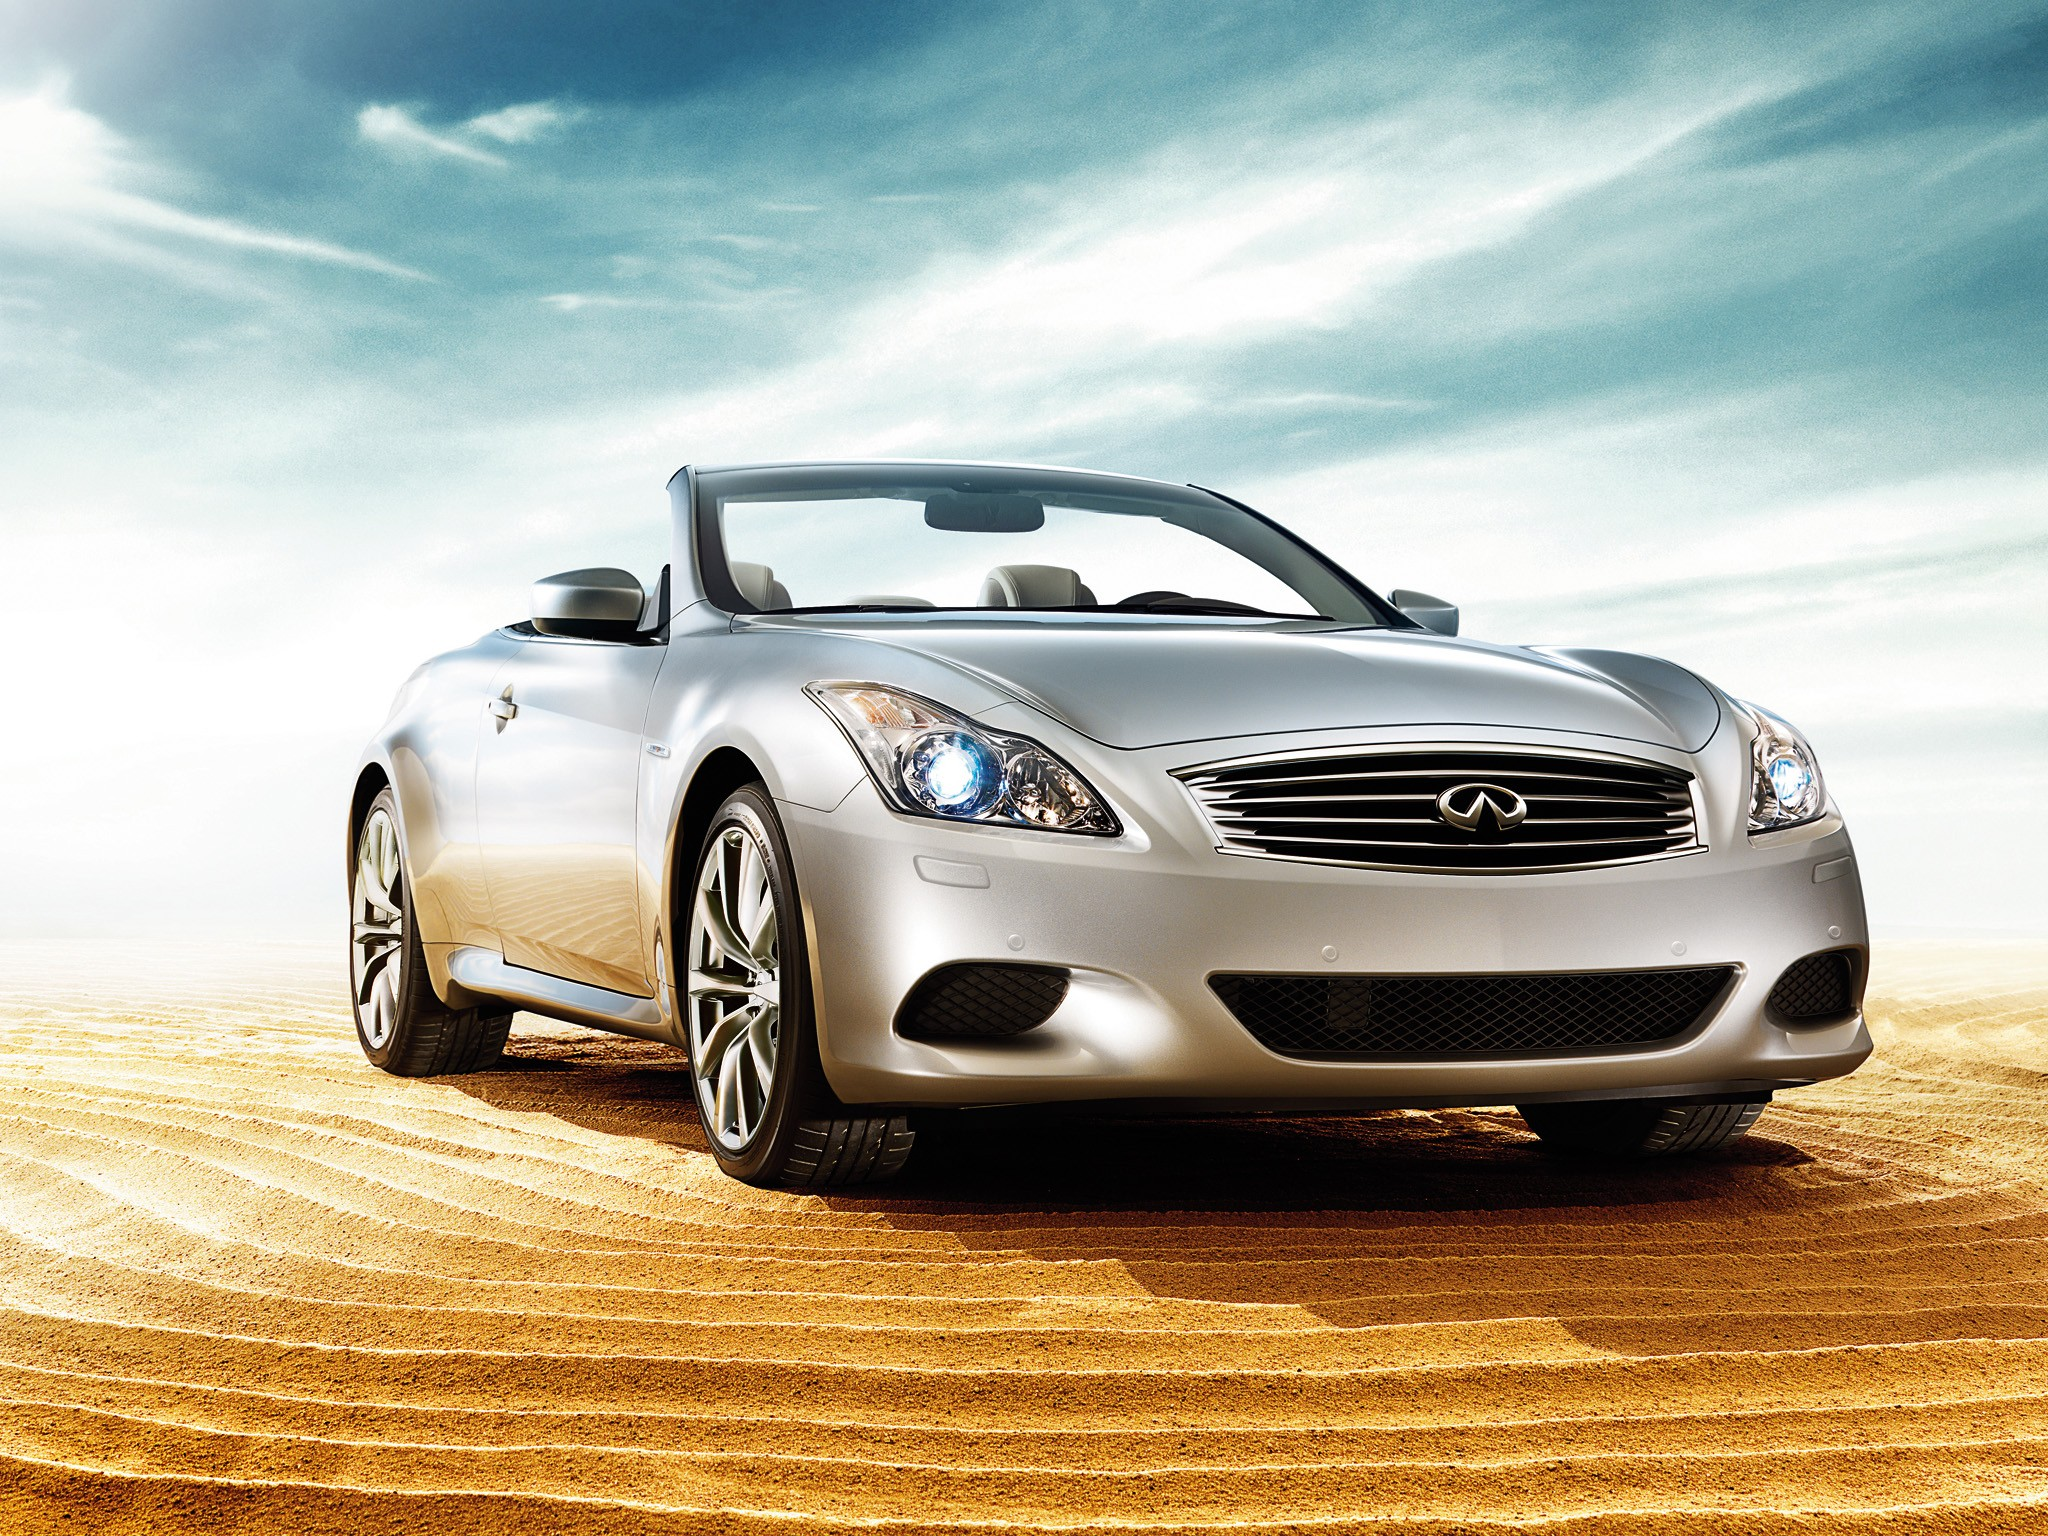 infiniti g37 convertible by - photo #41